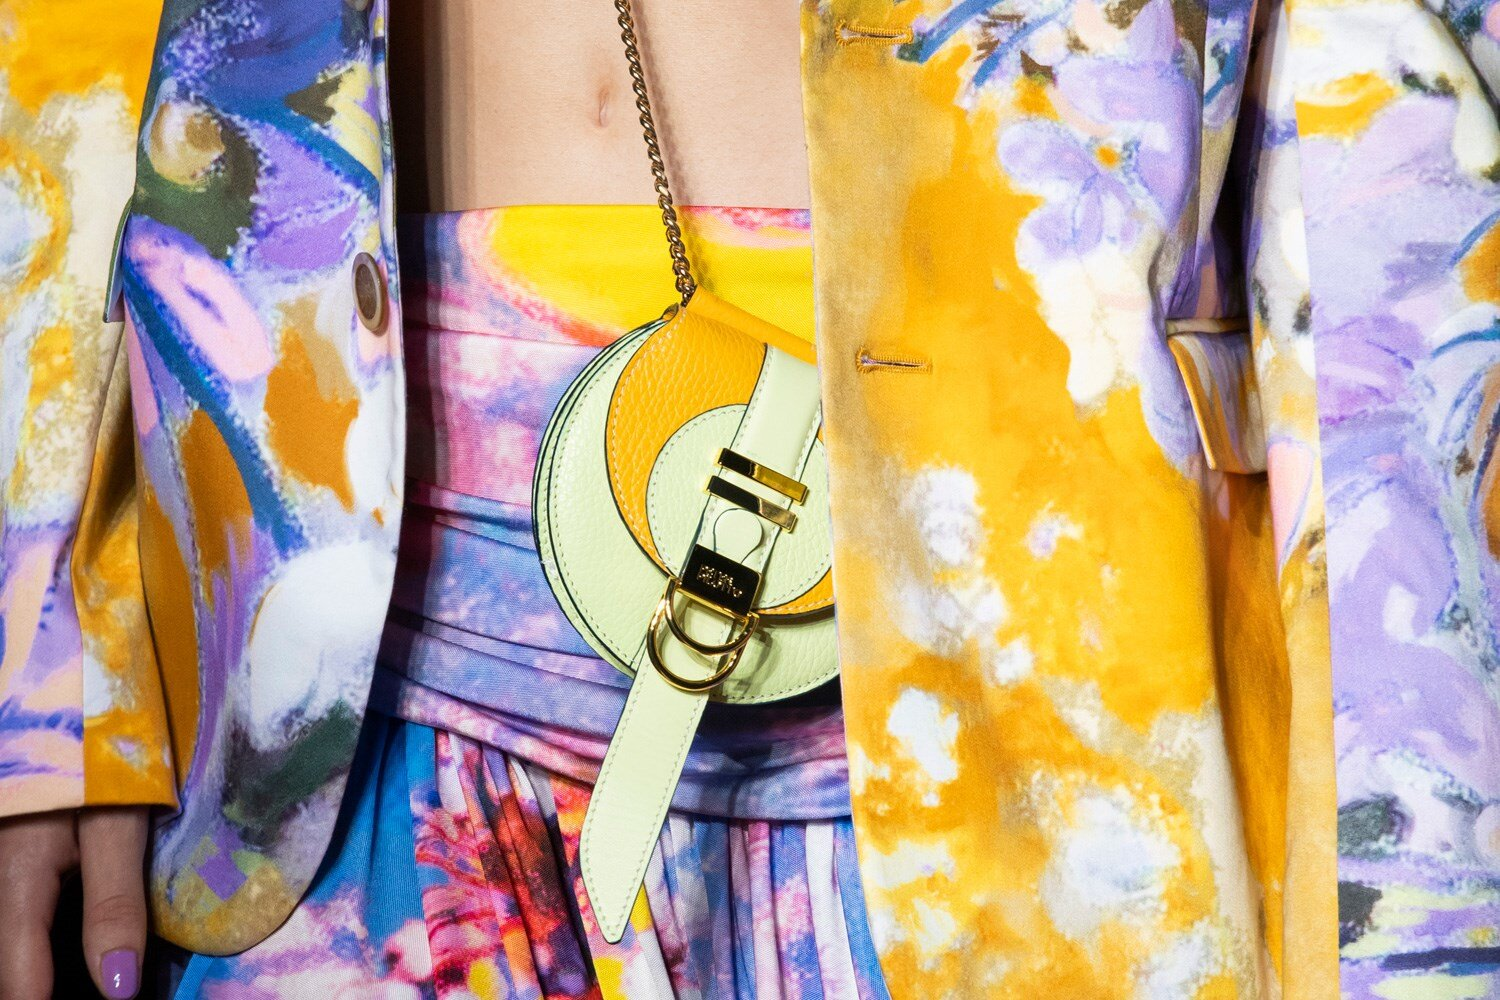 Details at Peter Pilotto SS20 reflect the psychedelic atmosphere and were a nod to Counterculture.